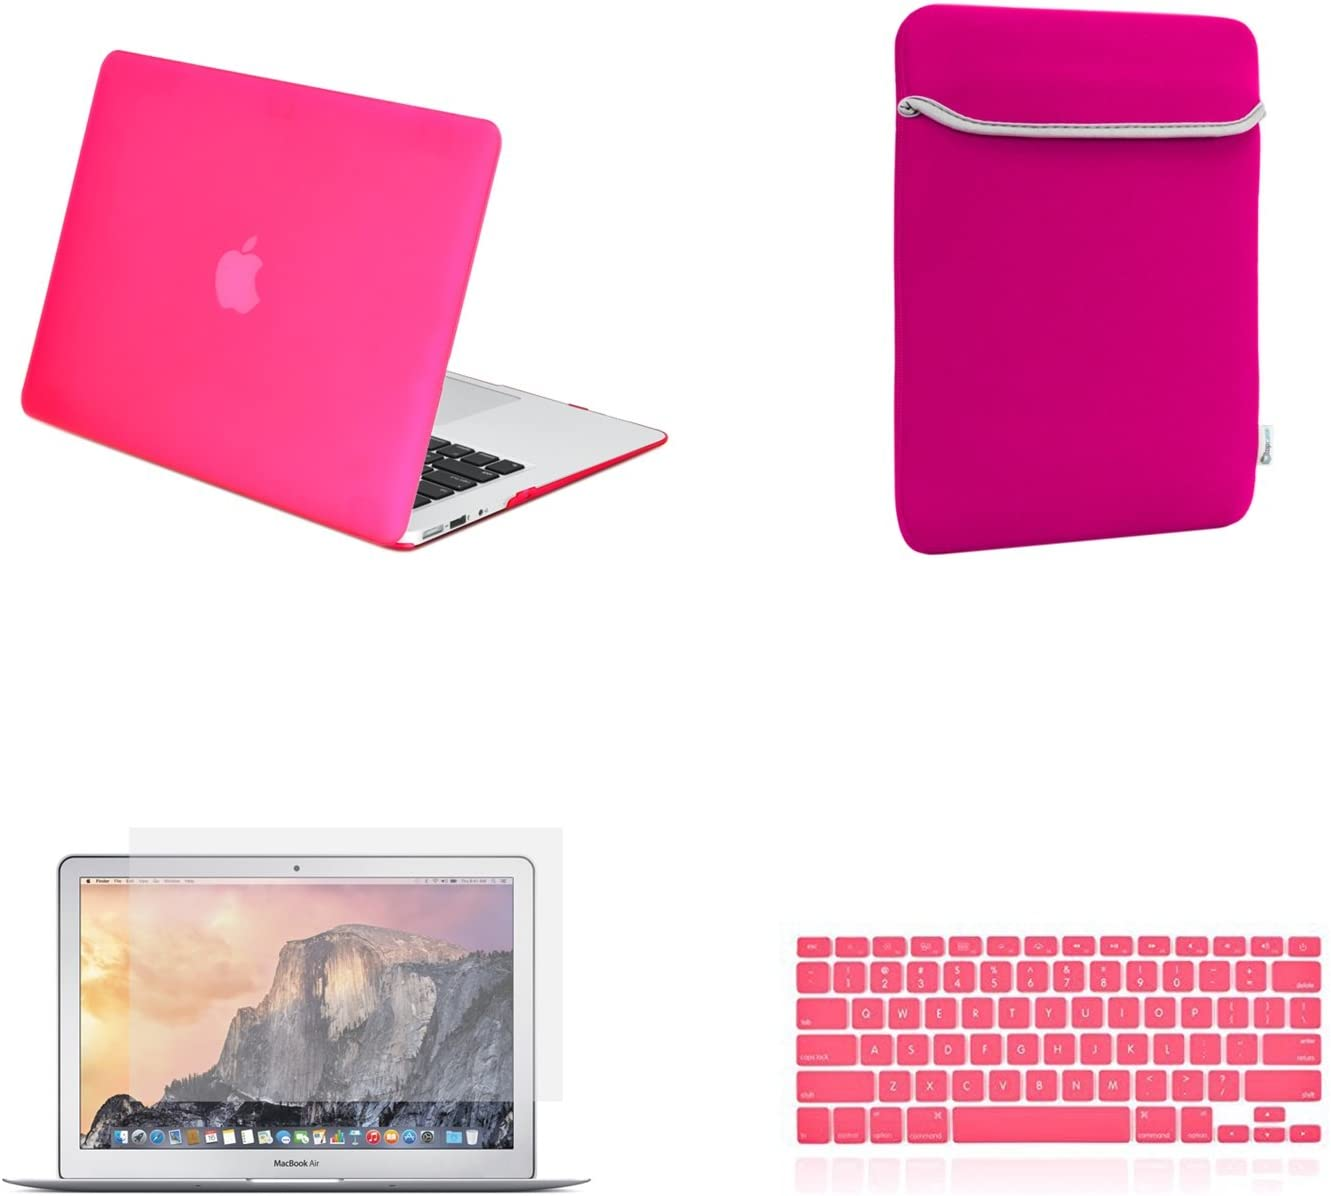 """TOP CASE - 4 in 1 Essential Bundle Rubberized Hard Case, Keyboard Cover, Screen Protector, Sleeve Bag Compatible MacBook Air 13"""" Model: A1466 & A1369 (Older Version, Release 2010-2017) - Hot Pink"""